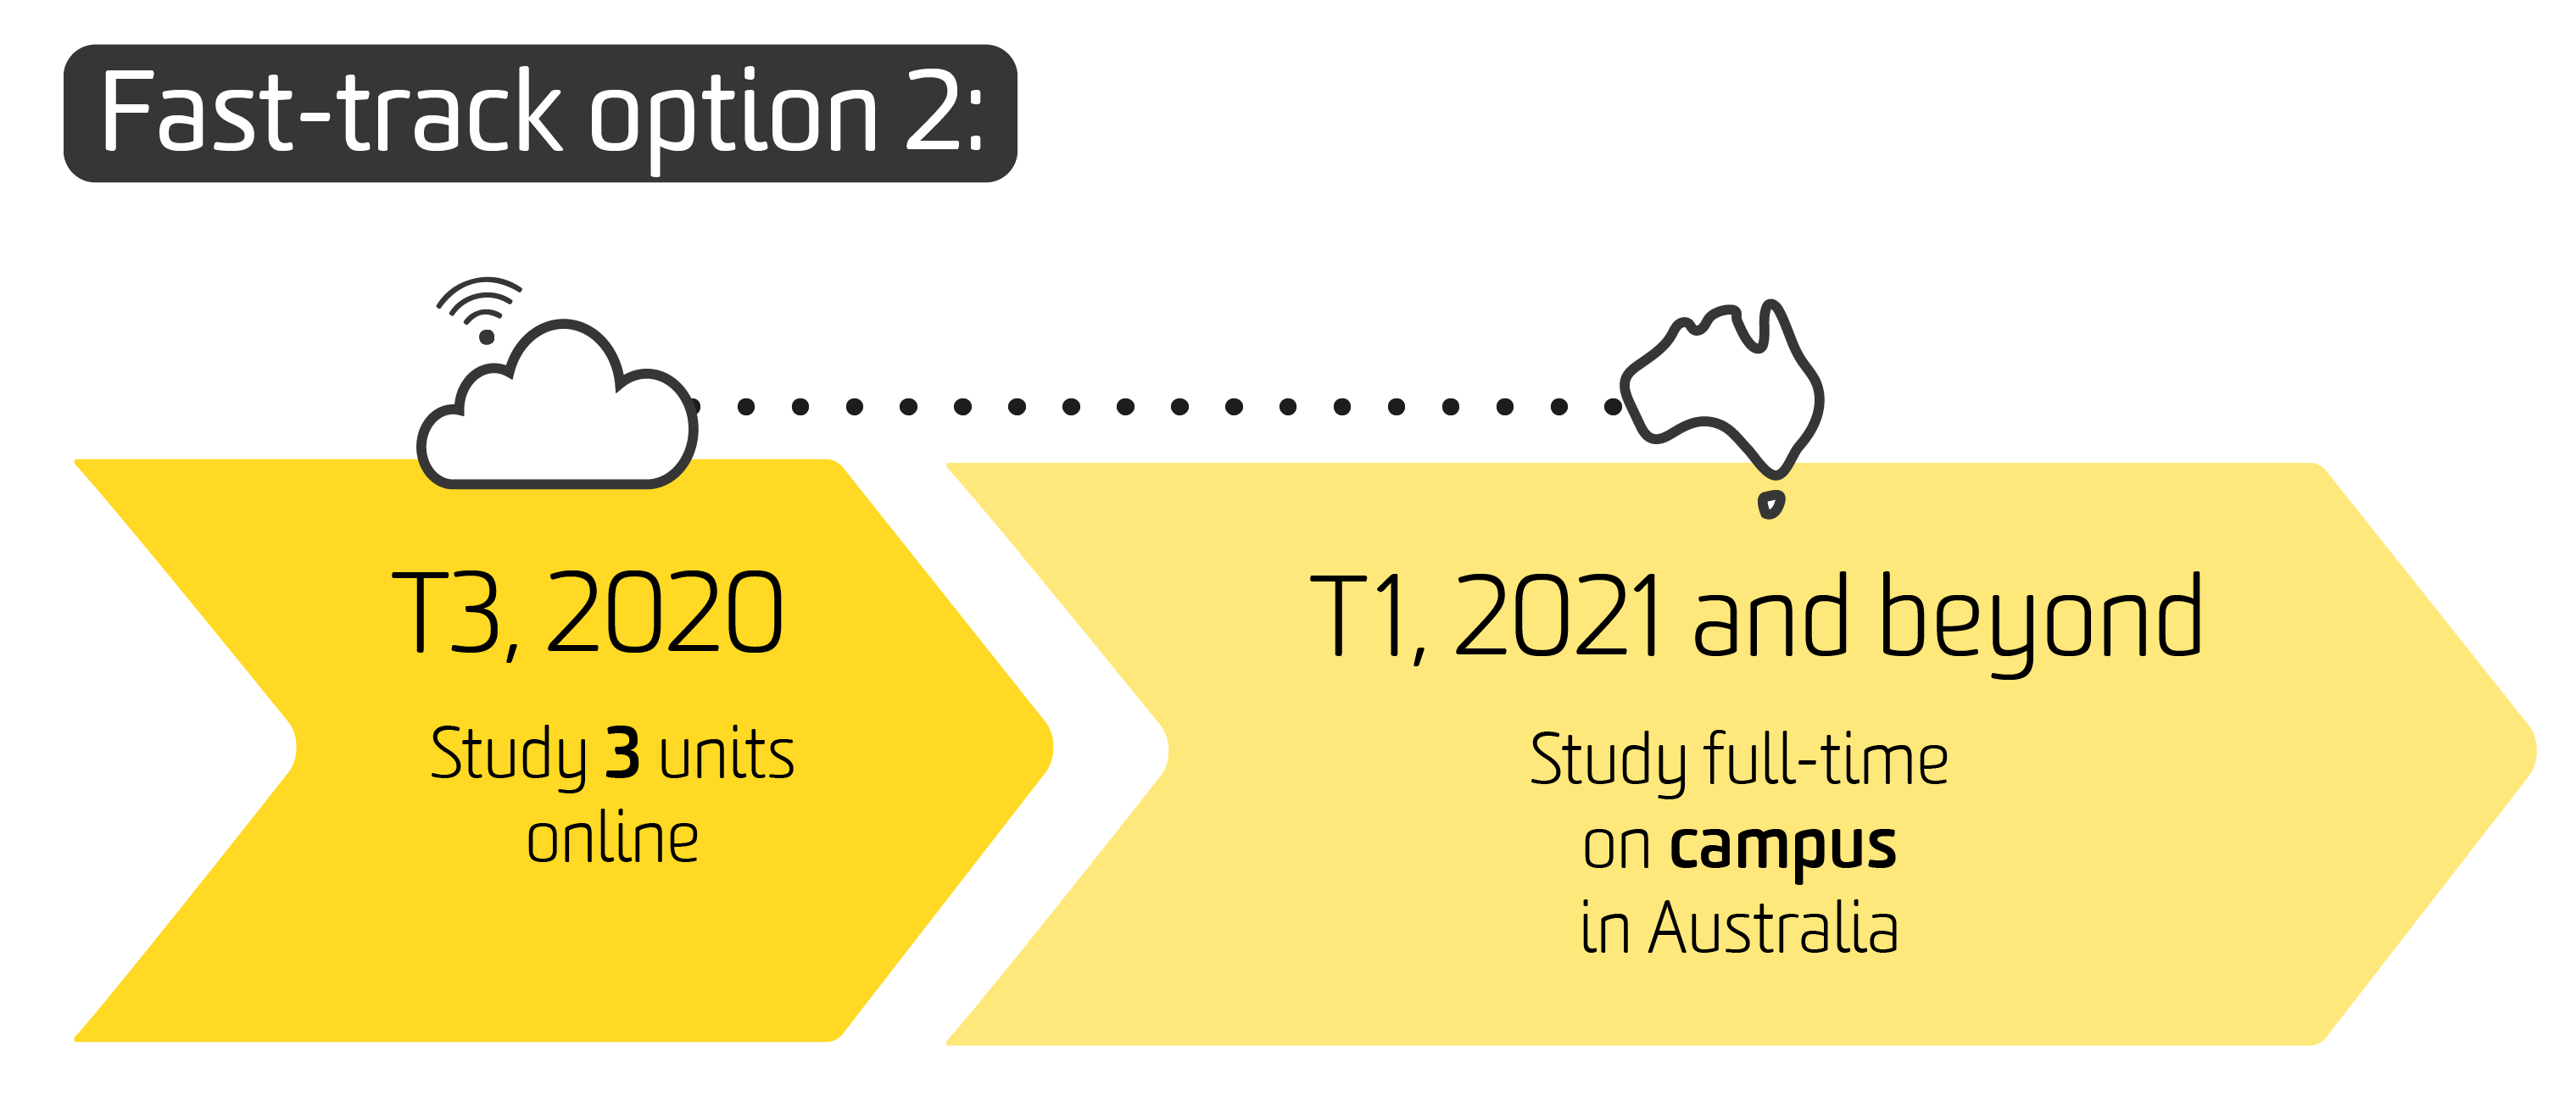 The third diagram shows fast track option 2: study 3 units online in Trimester 2, 2020. Then, study full time on campus in Australia in Trimester 3, 2020 and then continue full time on campus from Trimester 1 in 2021 and beyond.